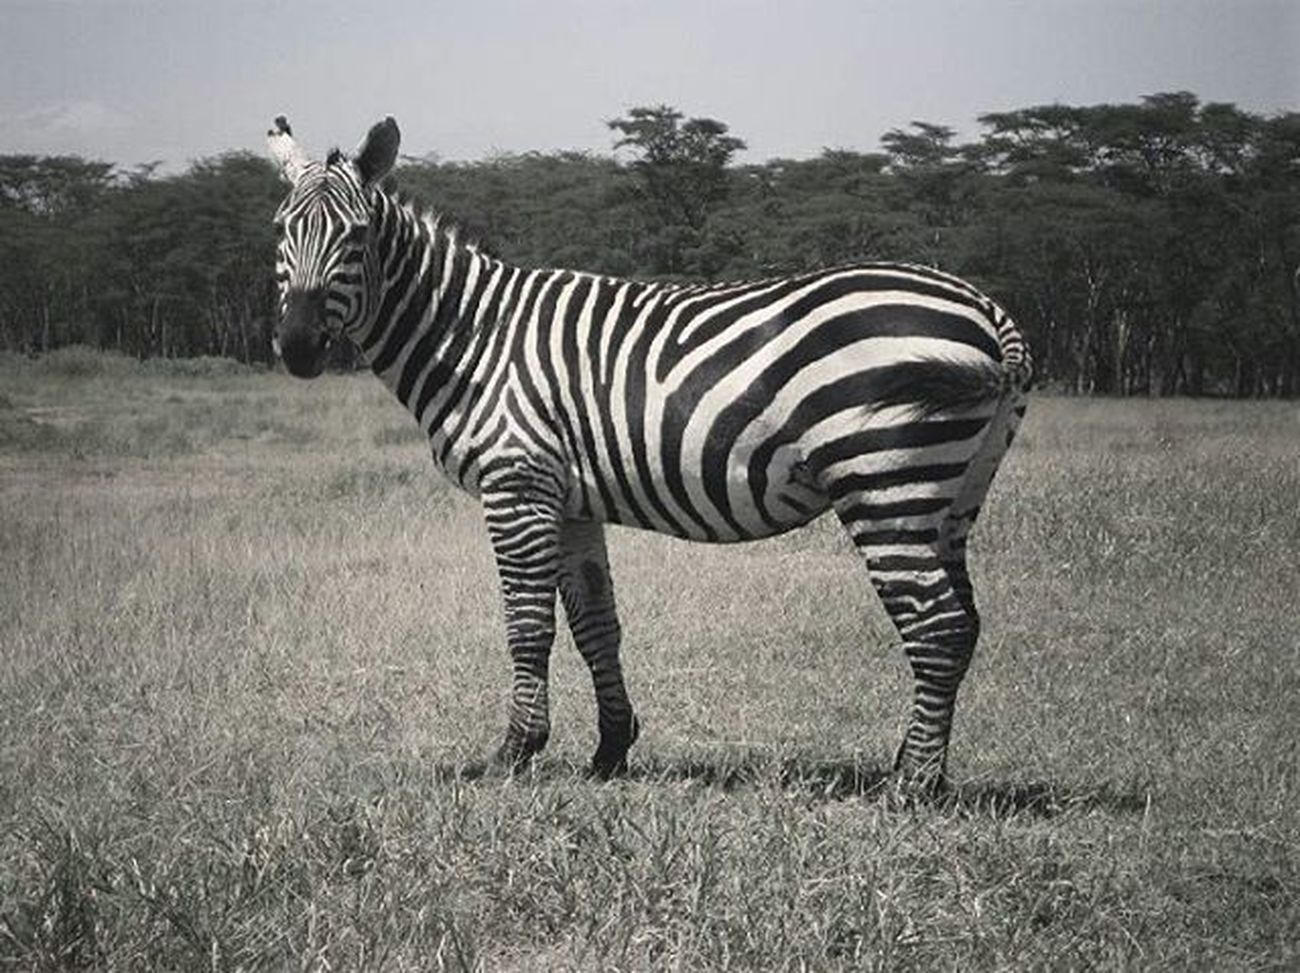 """A million People asking Themselves weather a Zebra is Black with white stripes or White with black Stripes . But Honestly who Cares about. It is a Beaut by Itself ."" 👣🔹 Make .life.creative Nature Food Traveling Music Citylife Art Fashion"